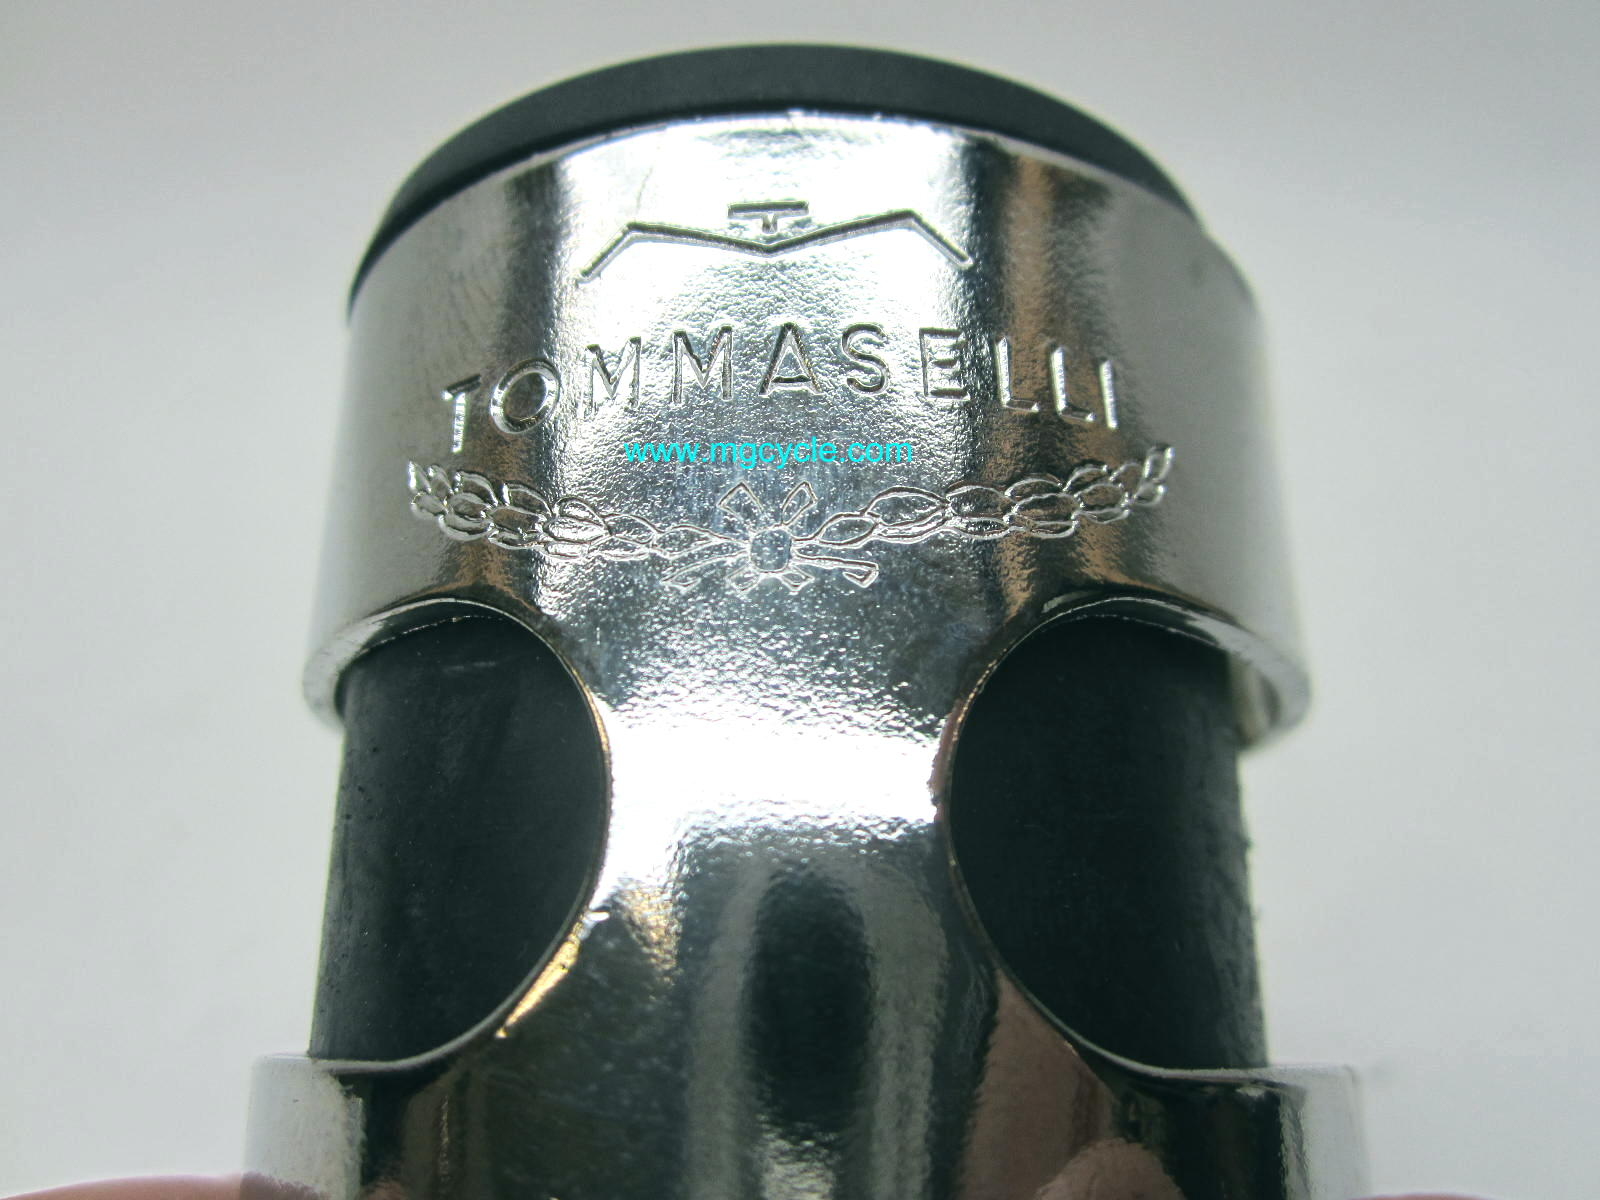 Tommaselli headlight ears, 35mm fork Guzzi Honda Yamaha Cafe